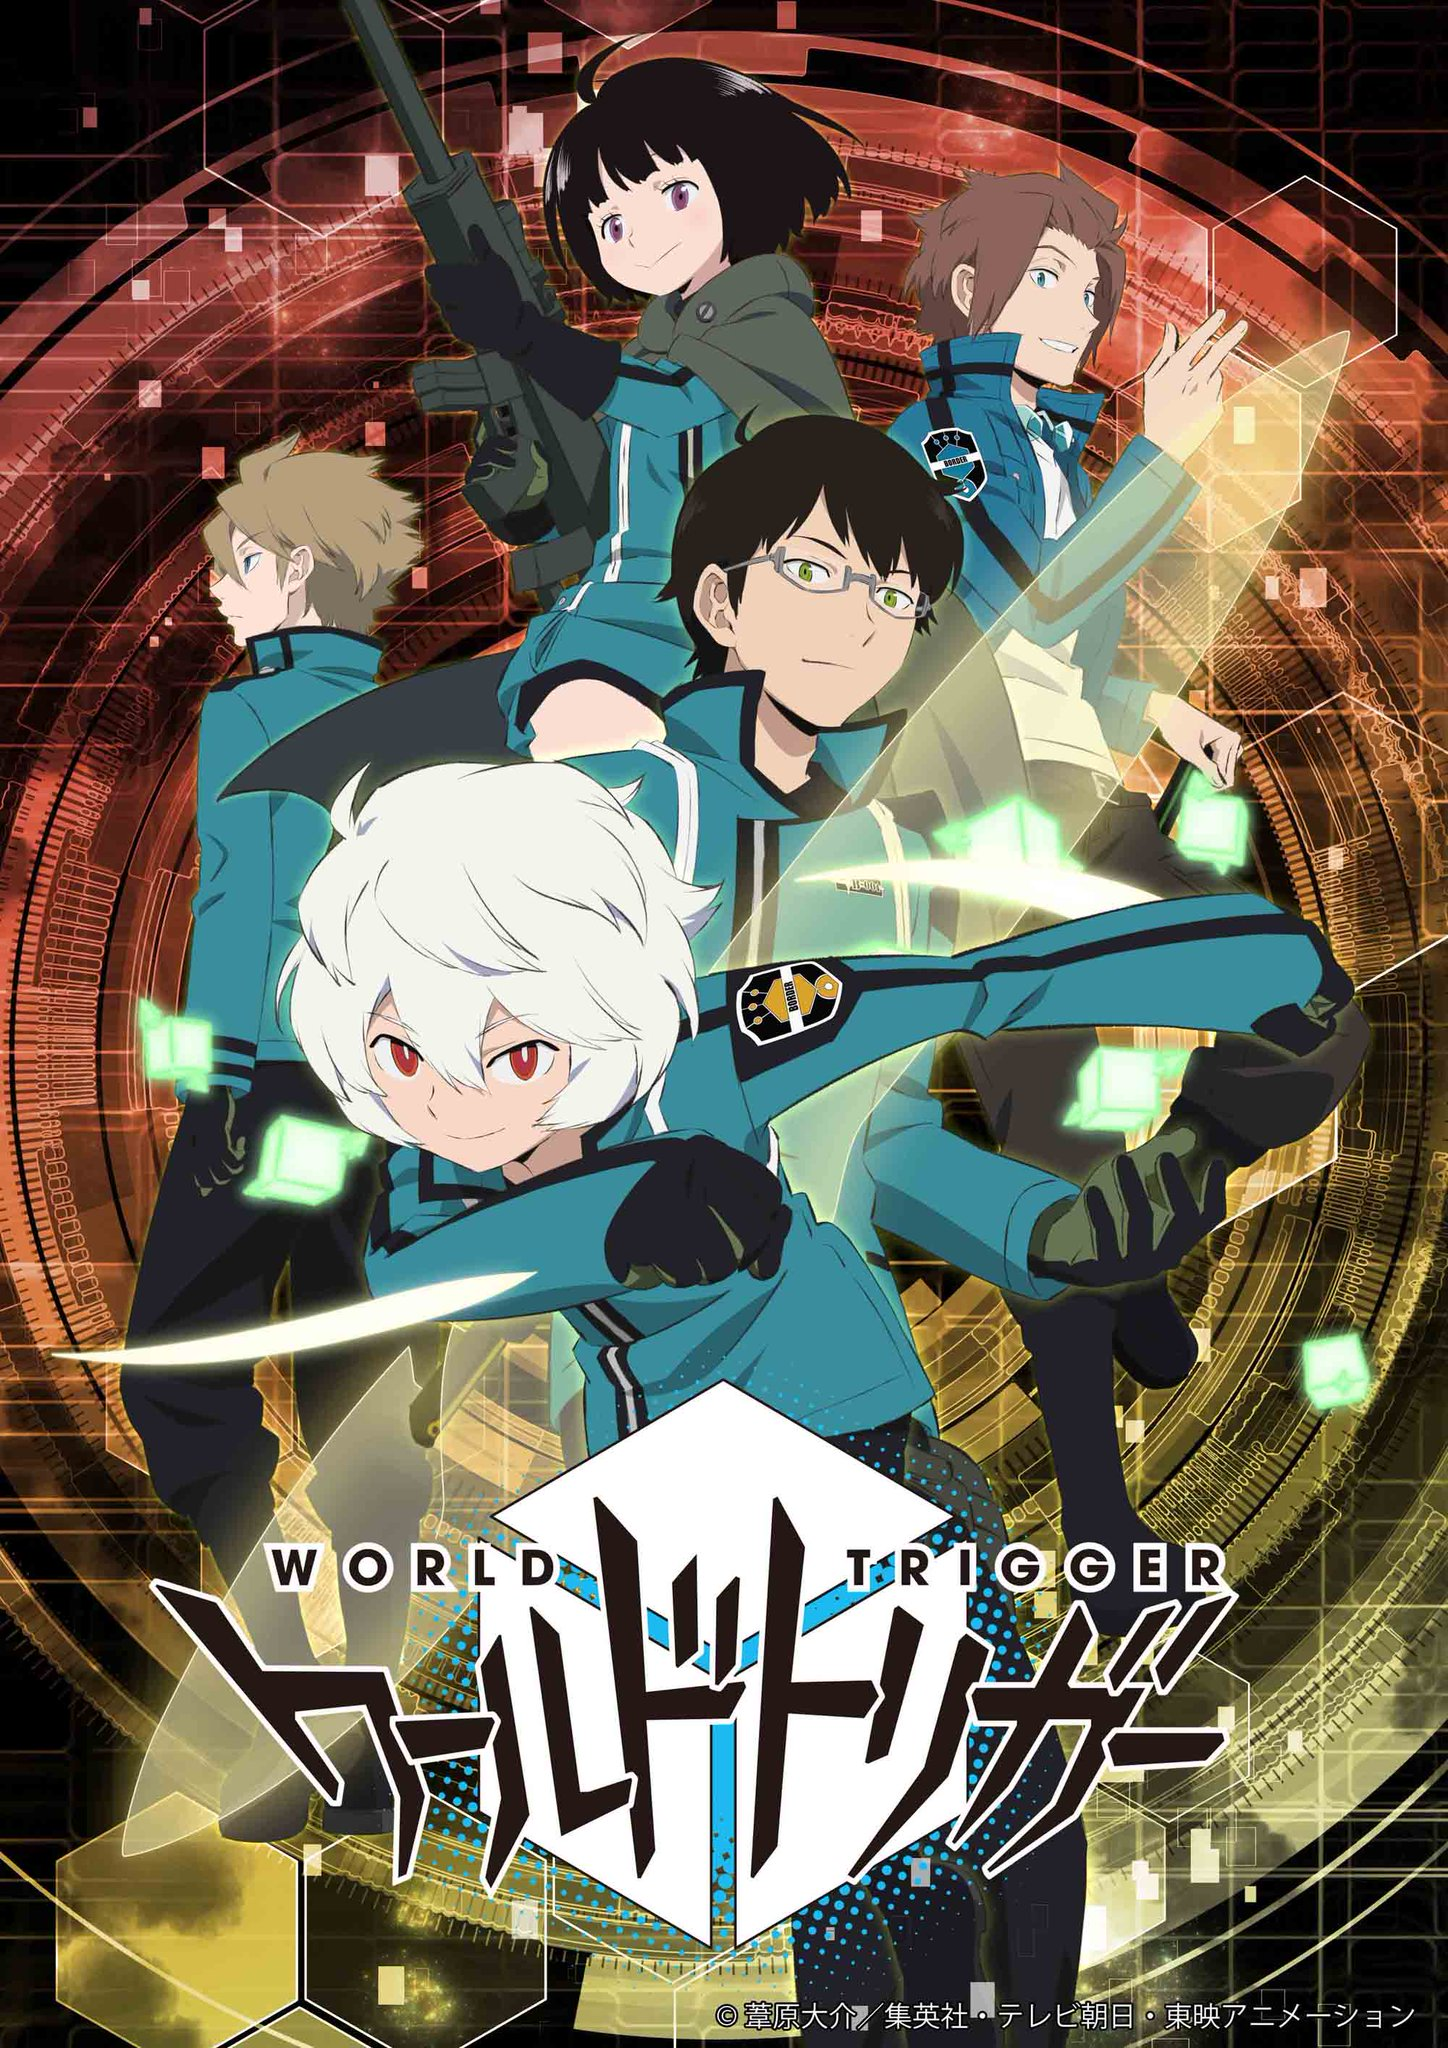 World trigger the celebration doesnt stop there the team behind the anime has some events coming up later this year too including a two day all night